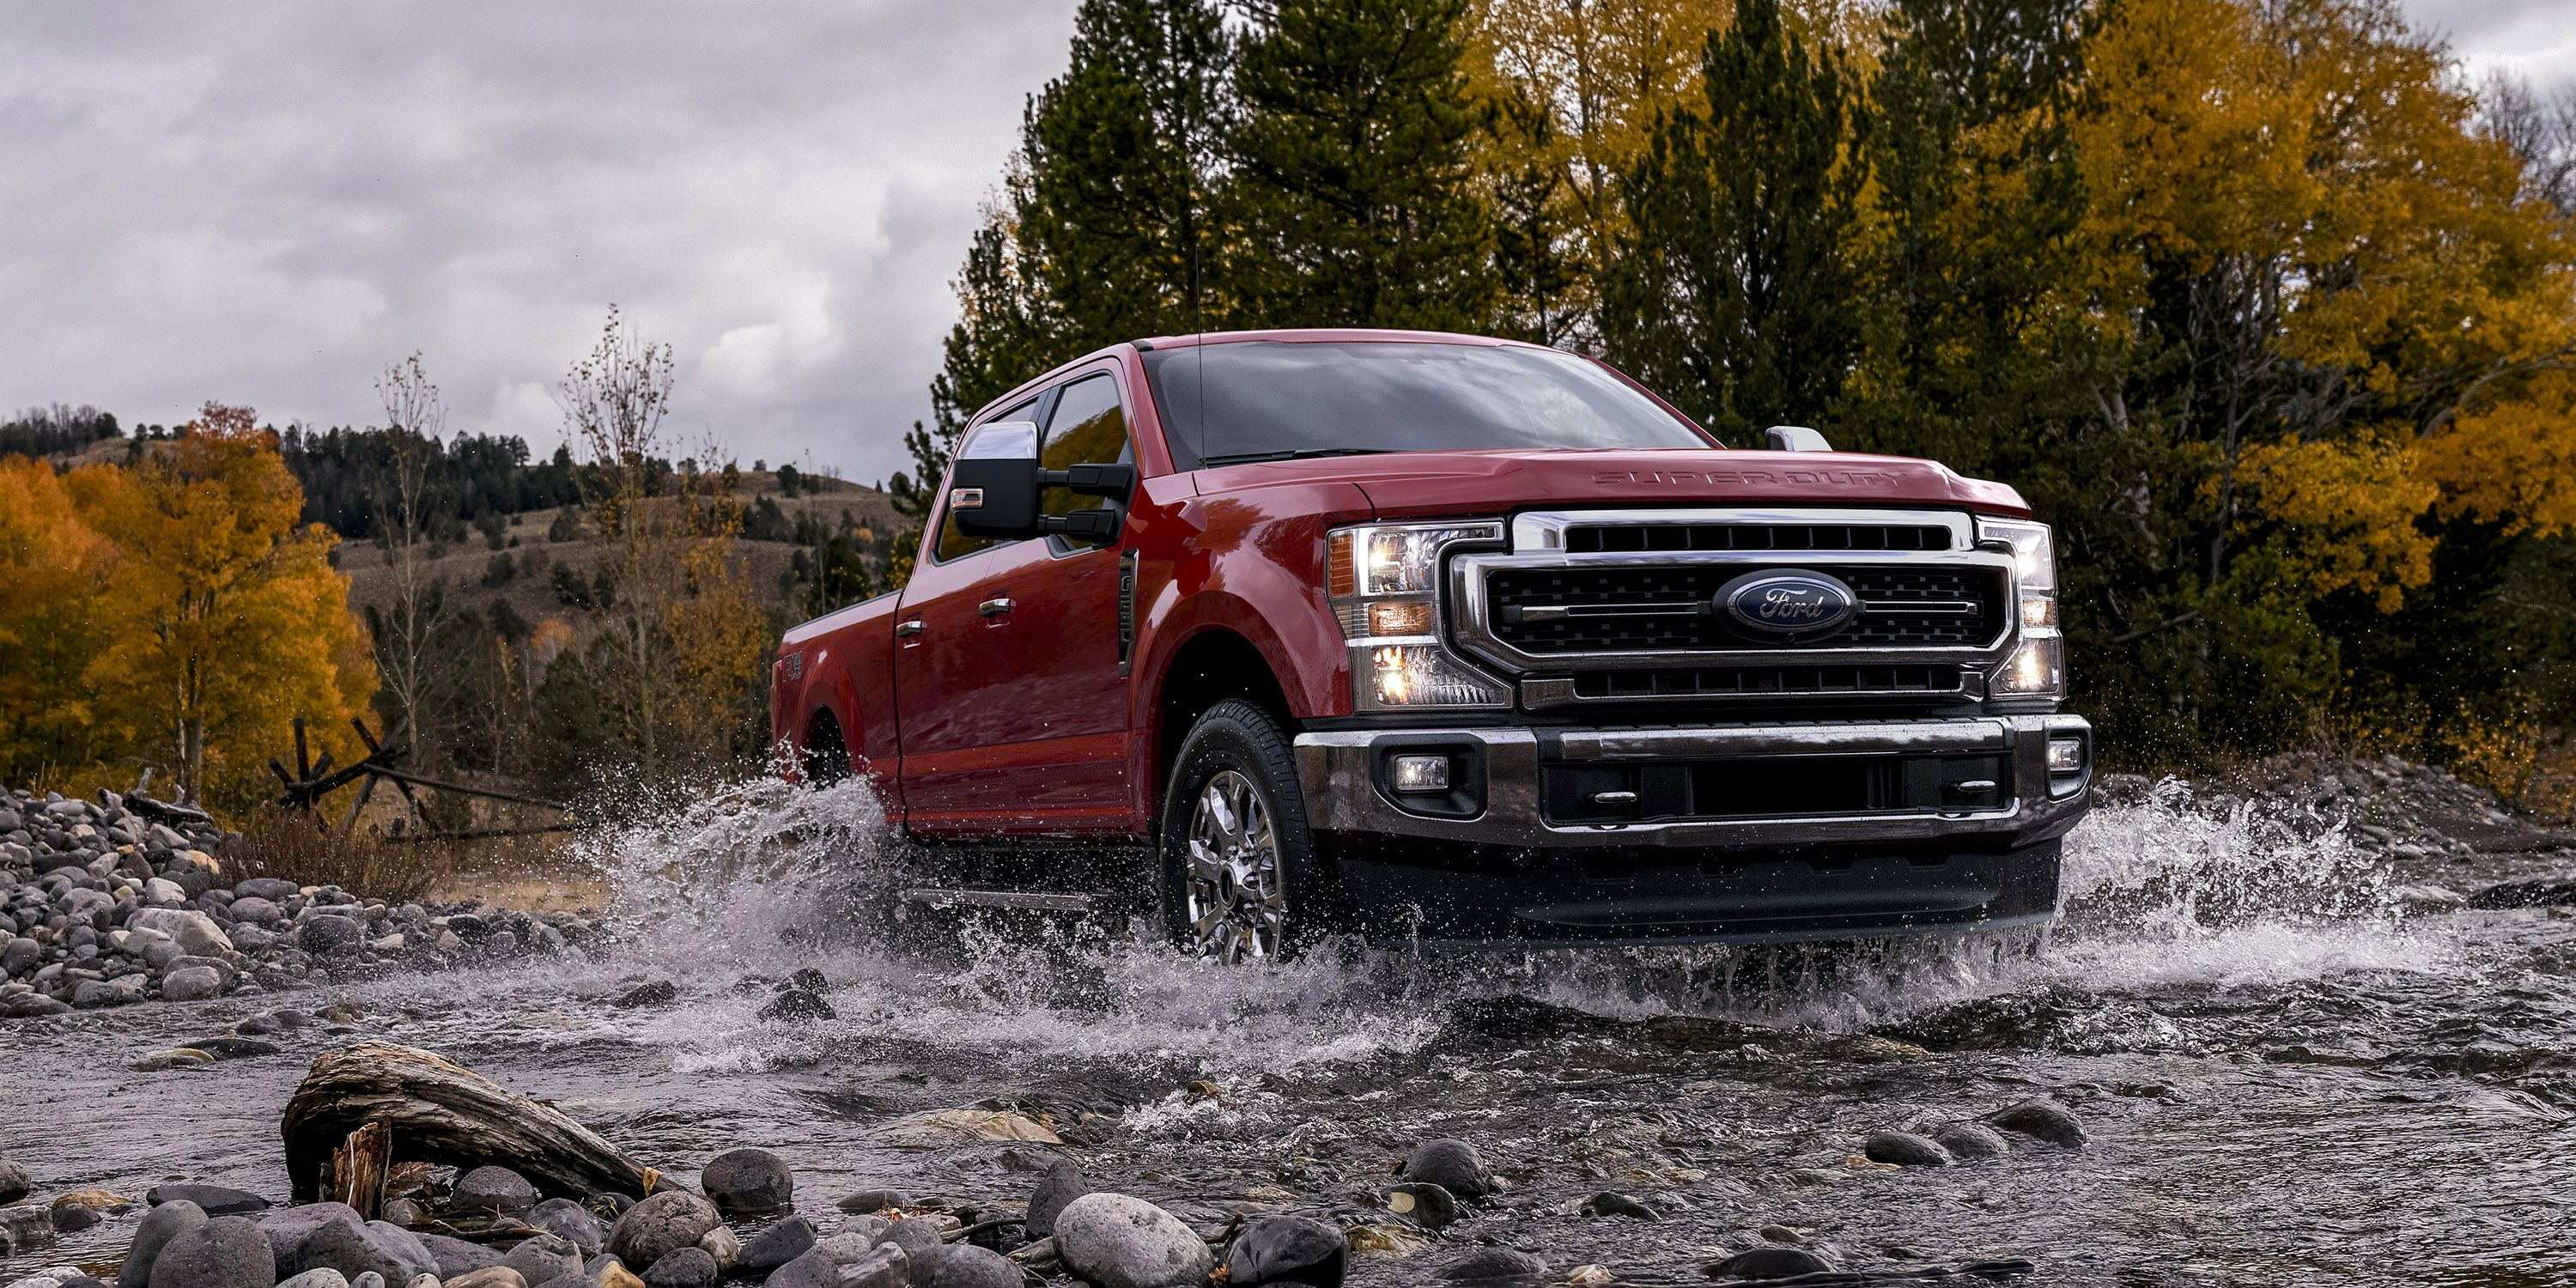 2020 Ford Super Duty - New F-250 and F-350 Debut With 7.3-Liter Gasoline V8